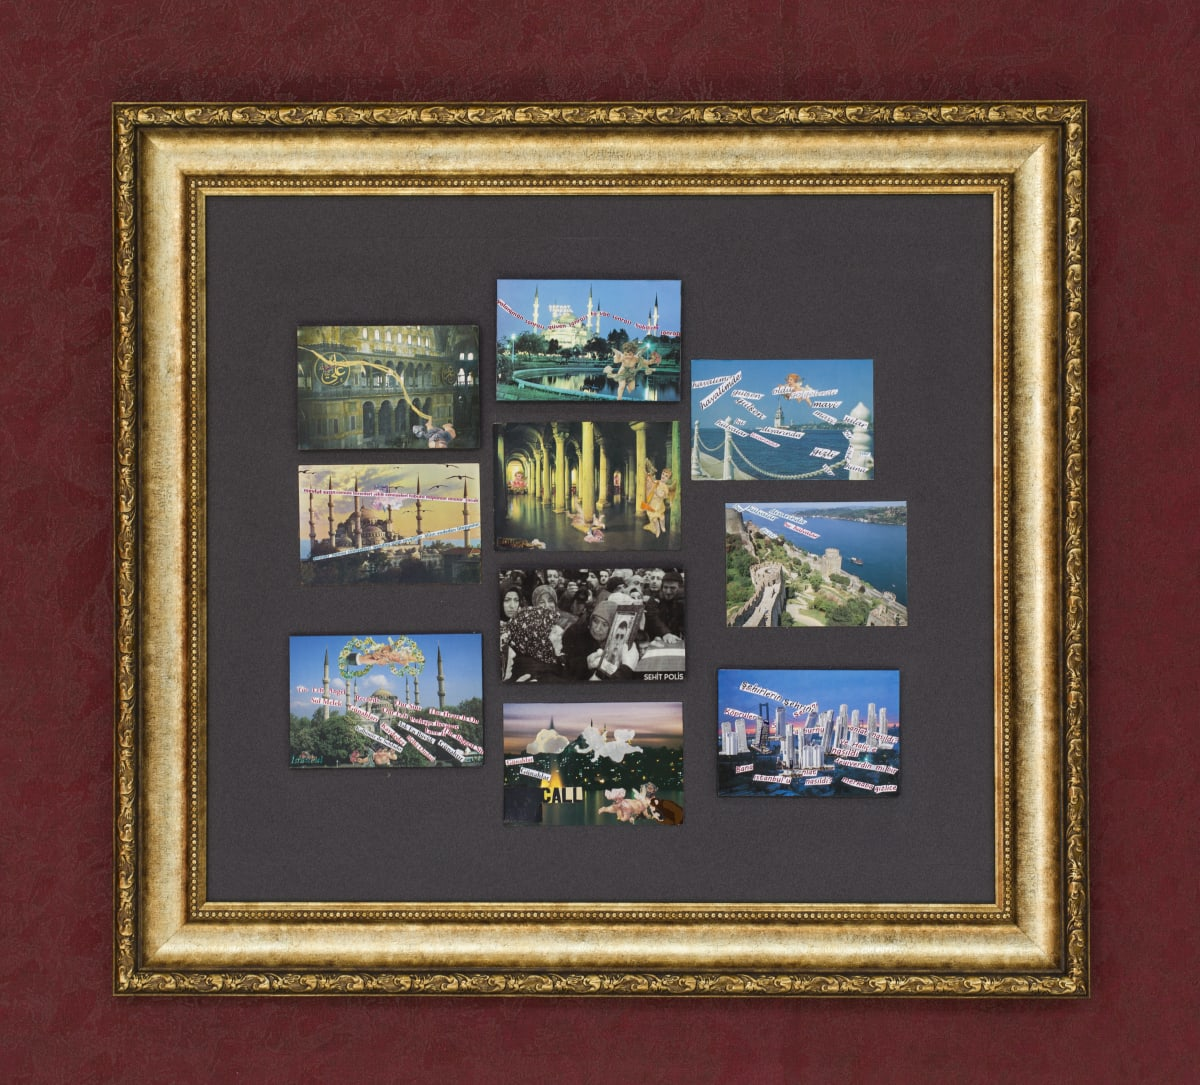 İstanbul 1 2020 postcards and mixed media 83 x 76 cm